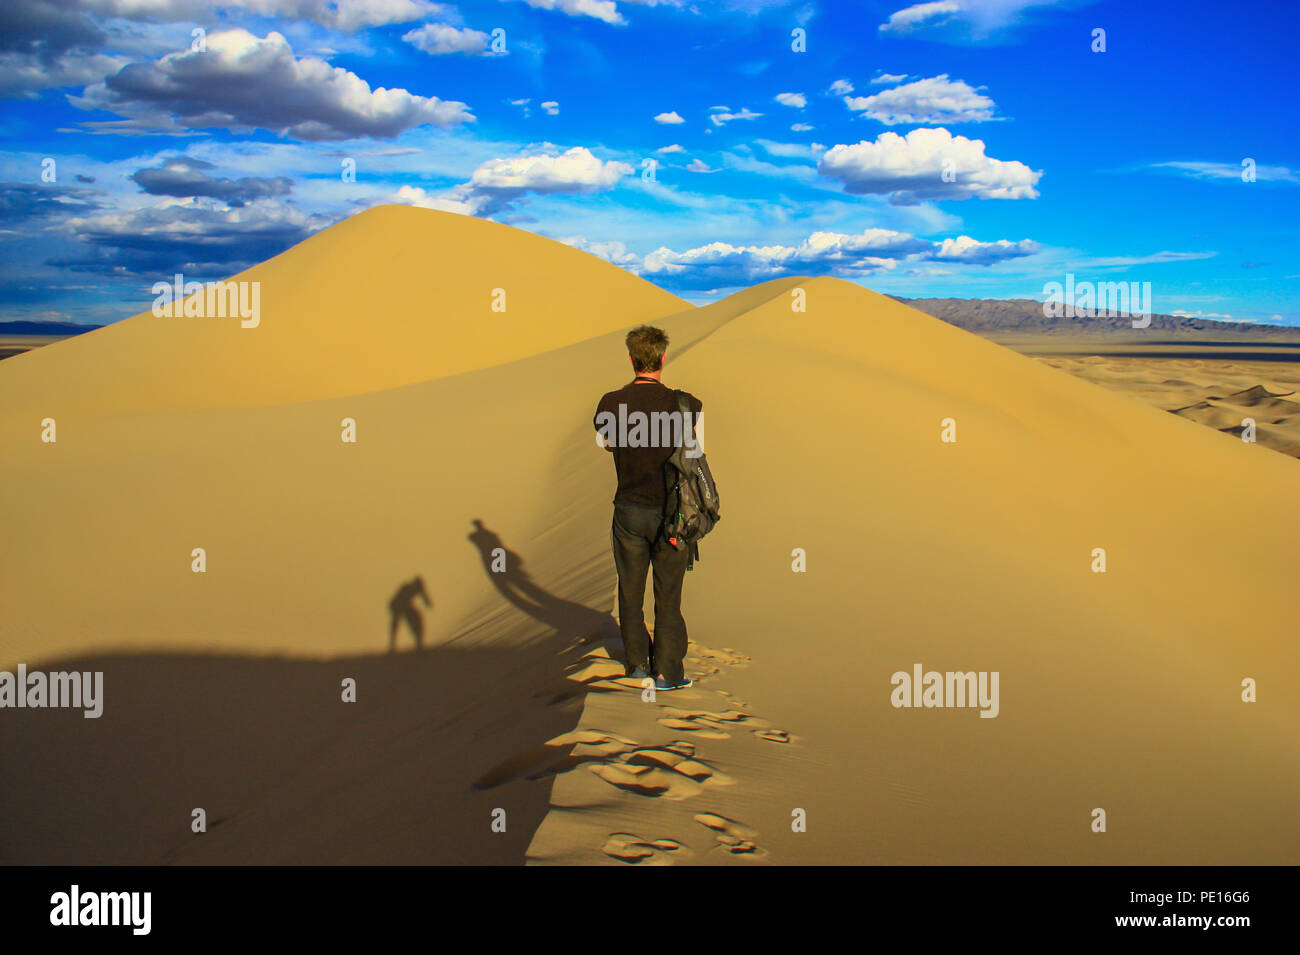 Gobi Desert, Mongolia - one of the largest deserts in the World, with hot Summers and freezing Winters, the Gobi Desert offers different landscapes - Stock Image